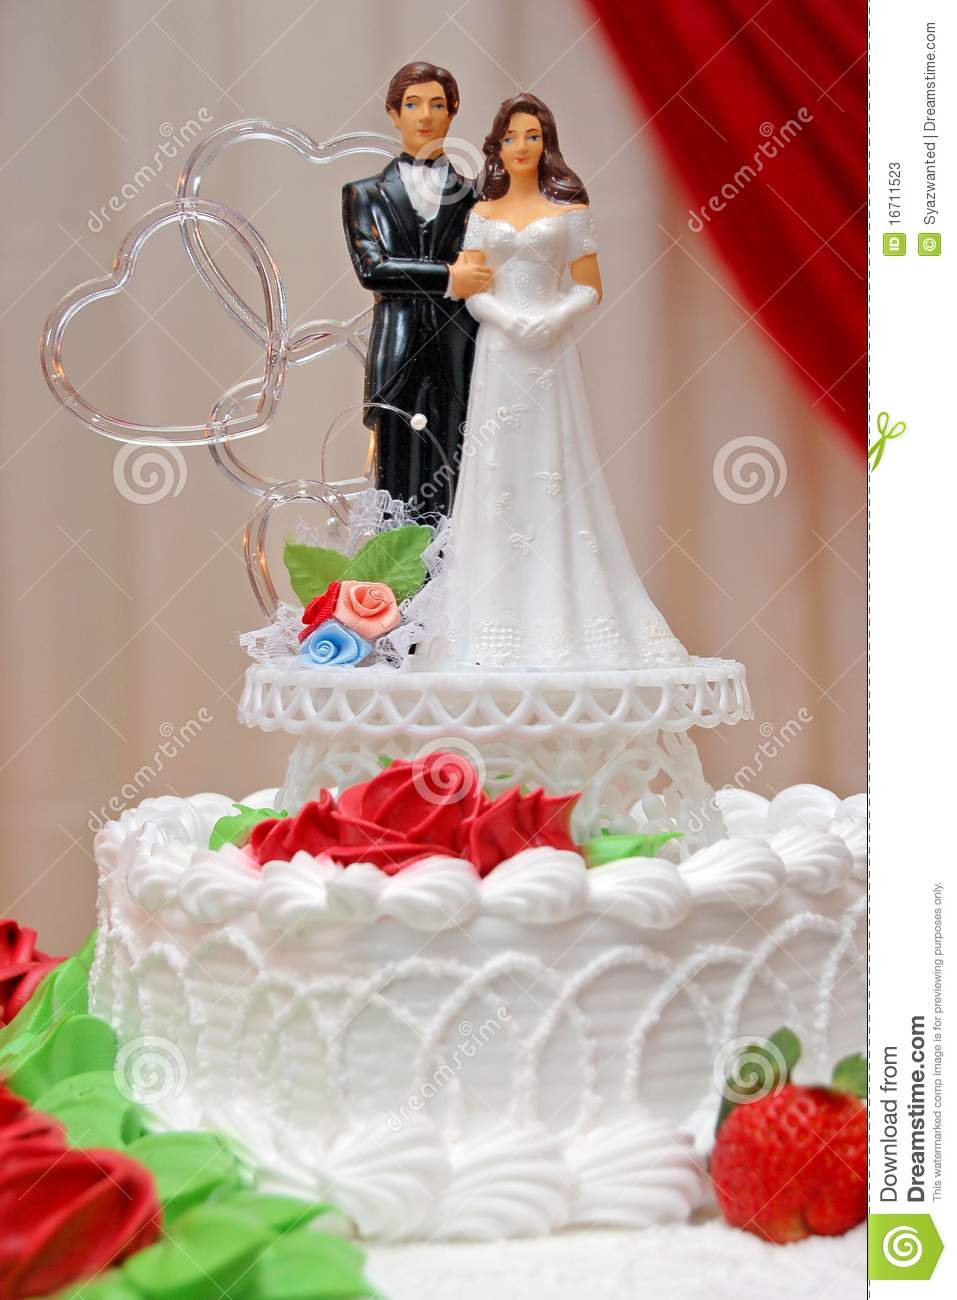 Cake Images For Marriage : Wedding cake stock image. Image of cake, white, engagement ...